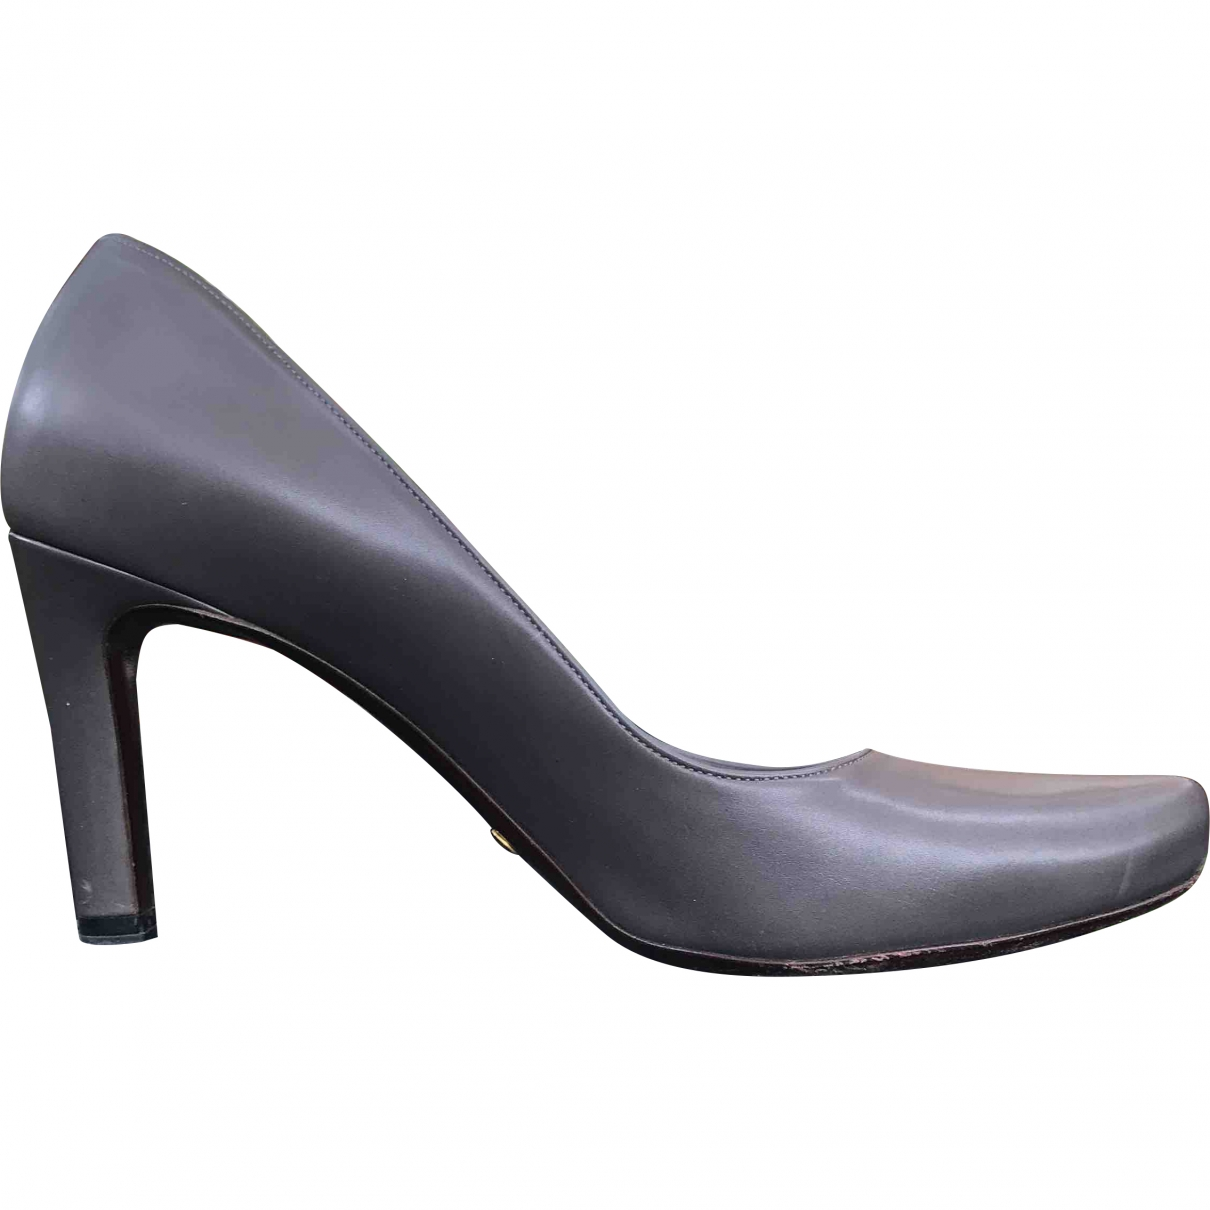 Giorgio Armani \N Grey Leather Heels for Women 40 EU